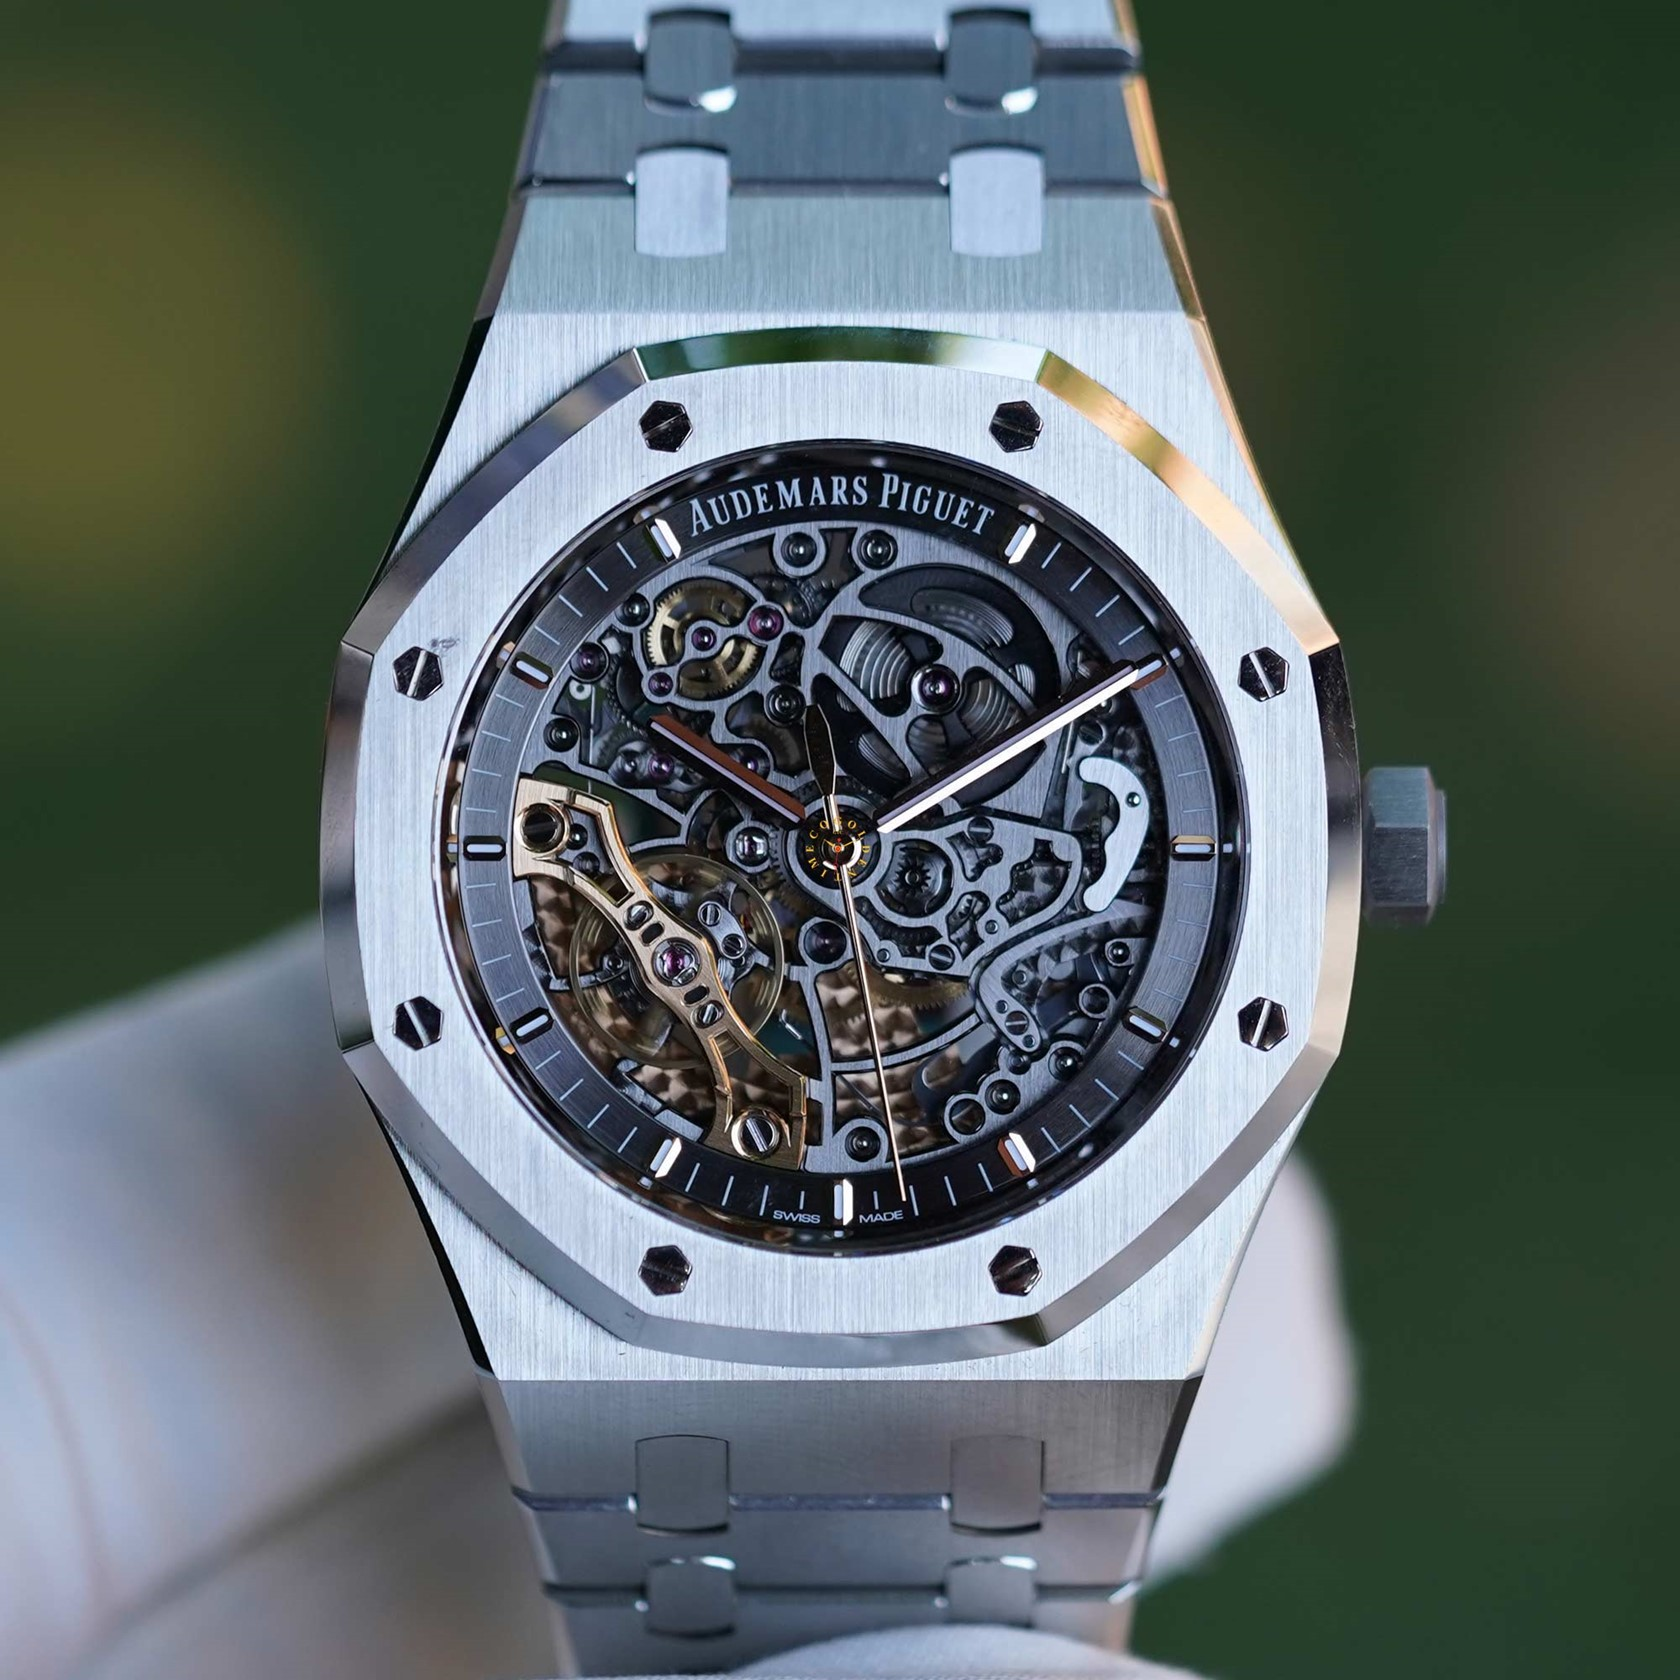 Audemars Piguet Royal Oak Double Balance Wheel Open-worked 15407ST.OO.1220ST.01